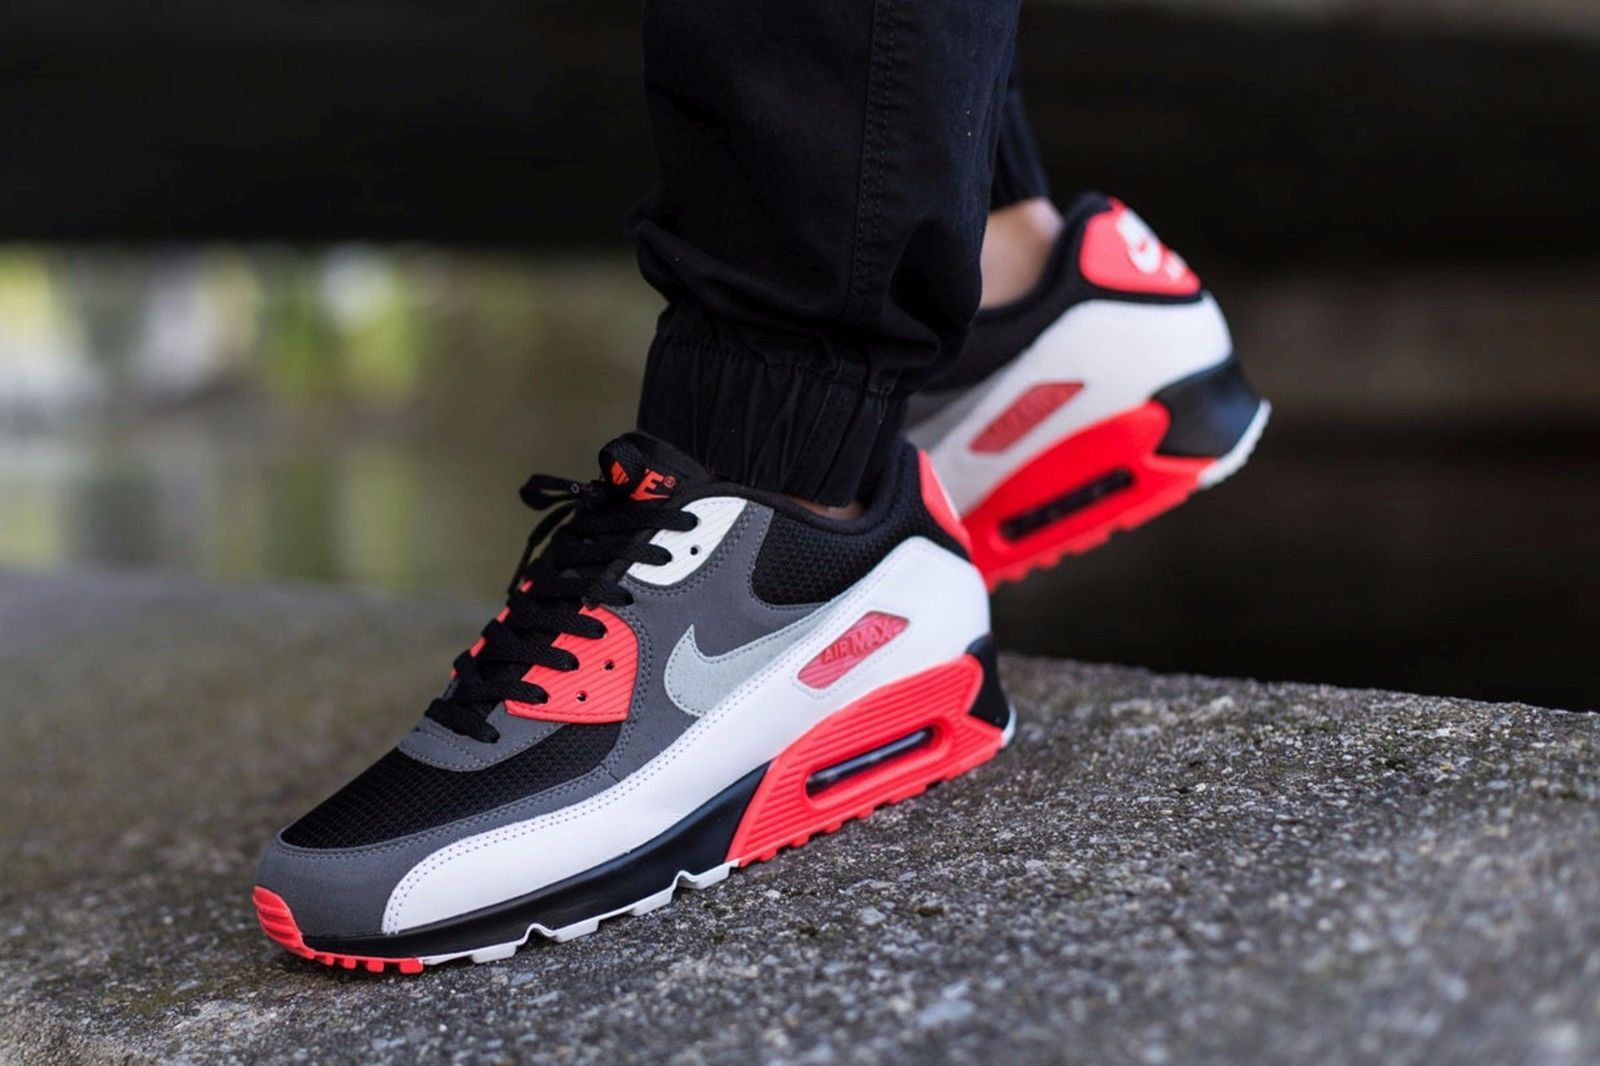 84a9b001a ... sale ff1fa ea666 low price nike air max 90 og reverse infrared mens shoe  size 12 725233 006 limited ...